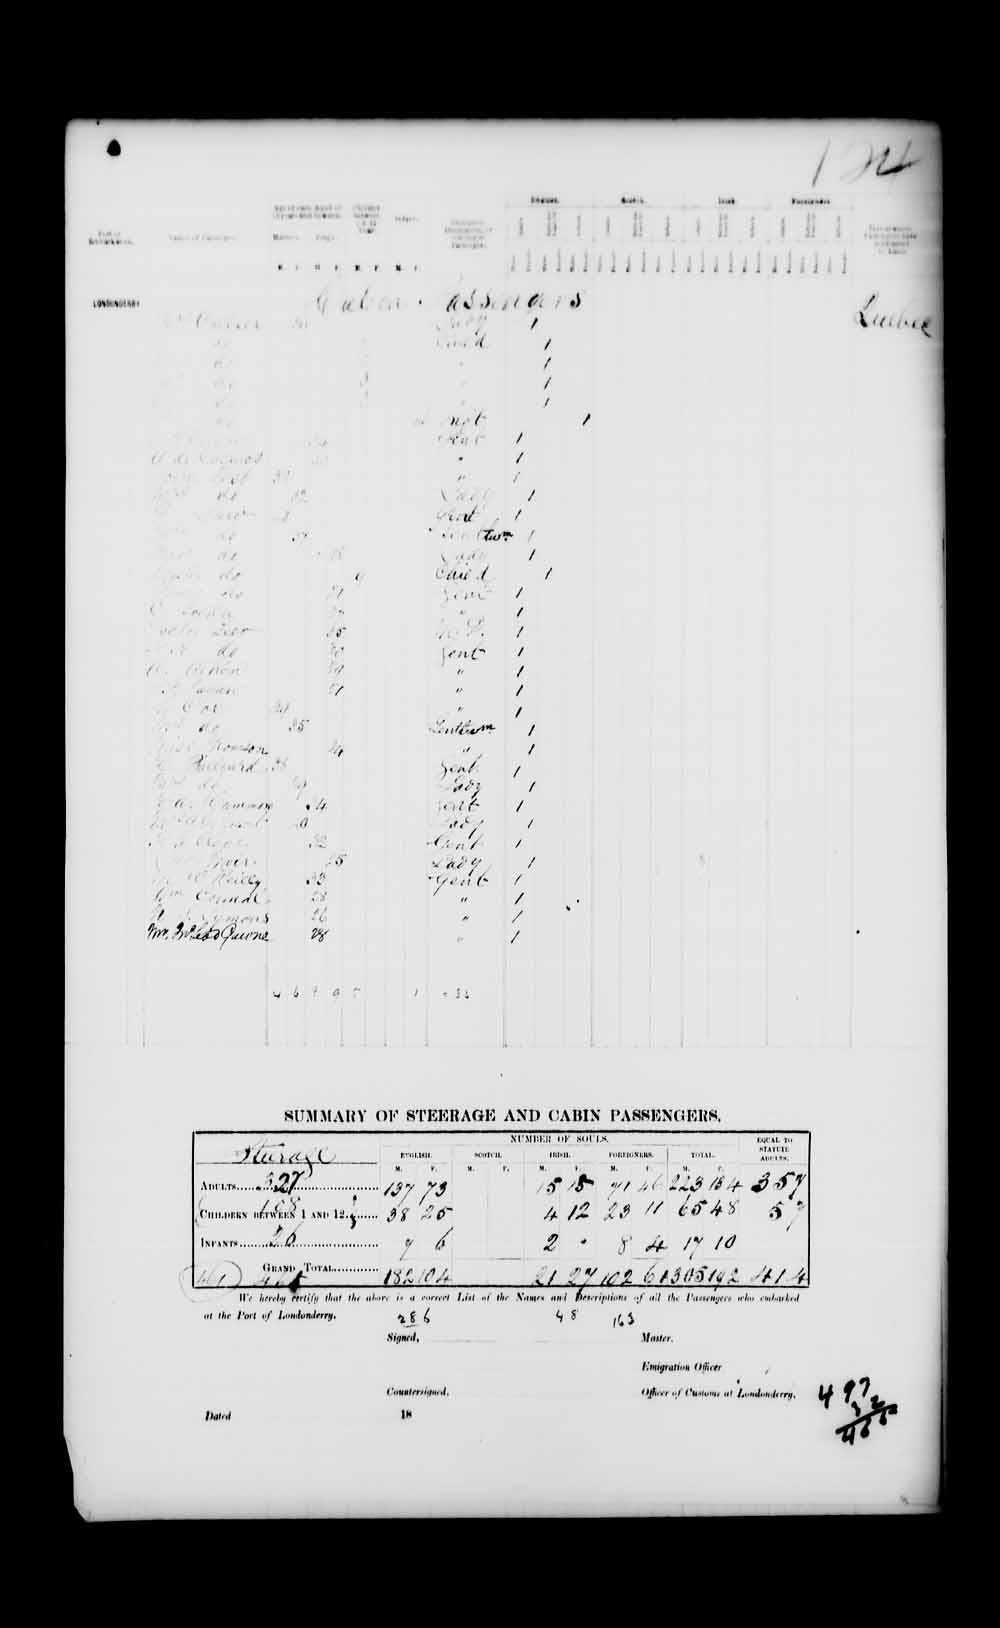 Digitized page of Passenger Lists for Image No.: e003541220